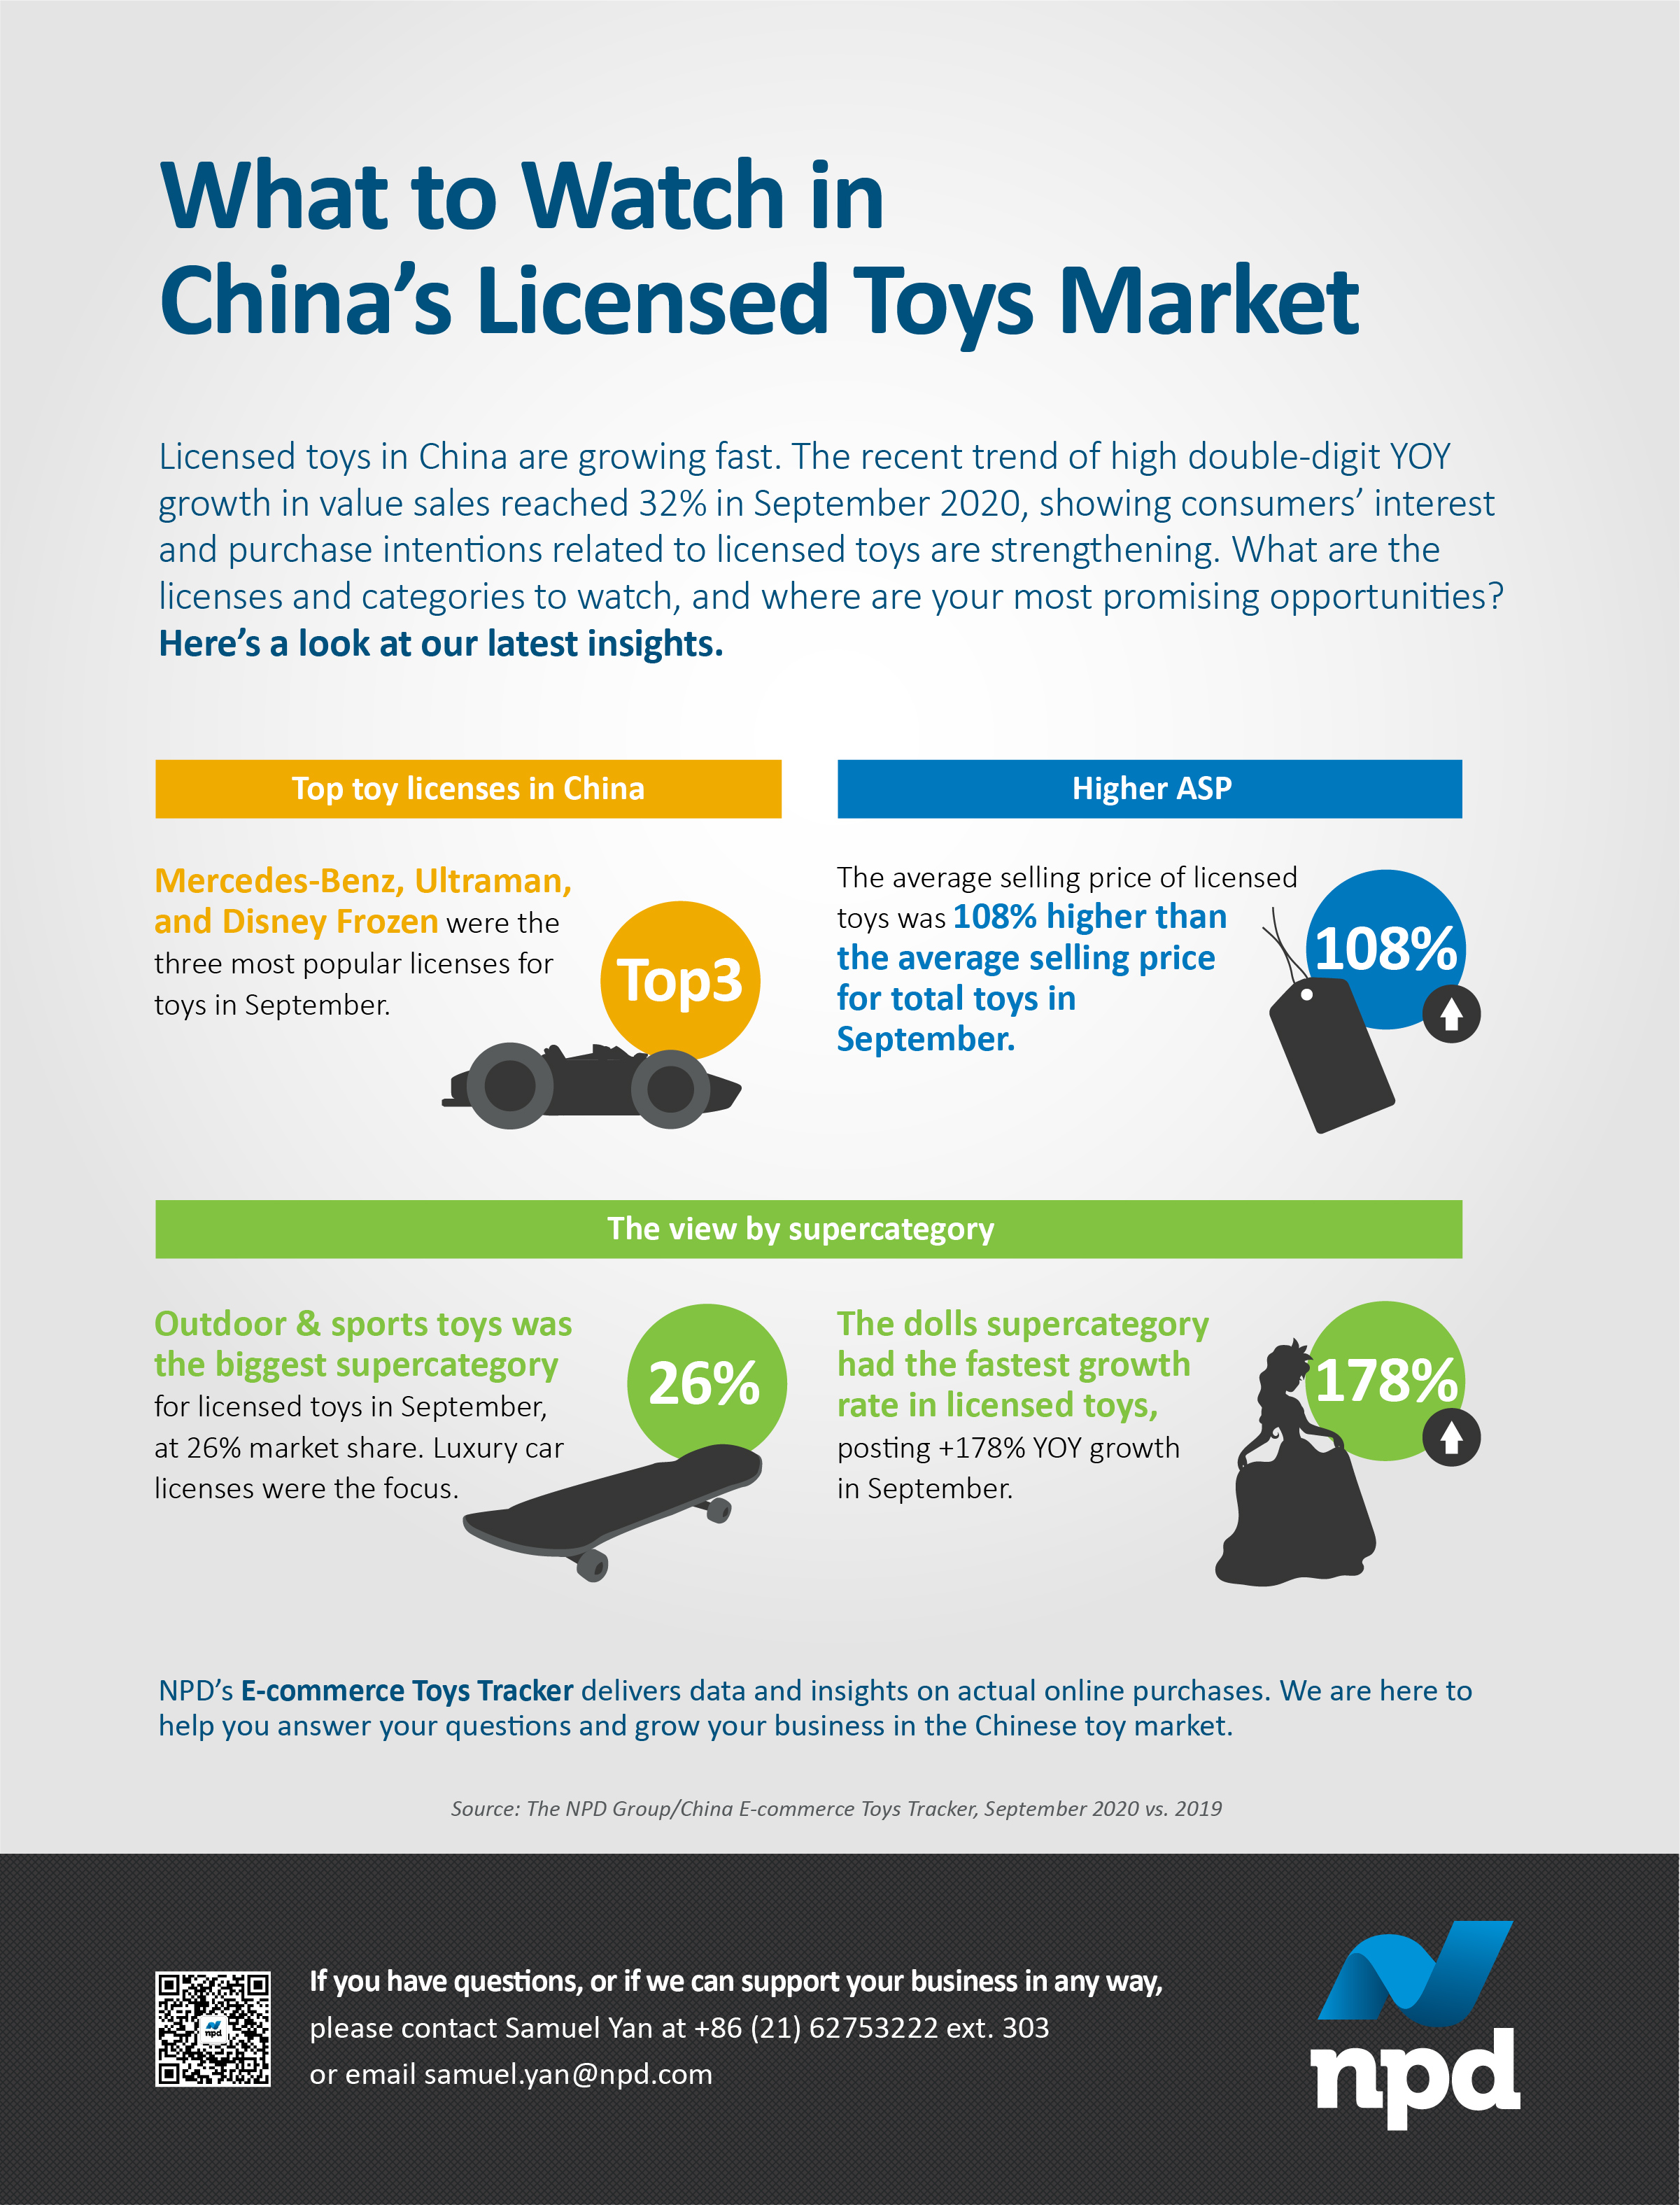 Licensed toys in China are growing fast. The recent trend of high double-digit YOY growth in value sales reached 32% in September 2020, showing consumers' interest and purchase intentions related to licensed toys are strengthening.